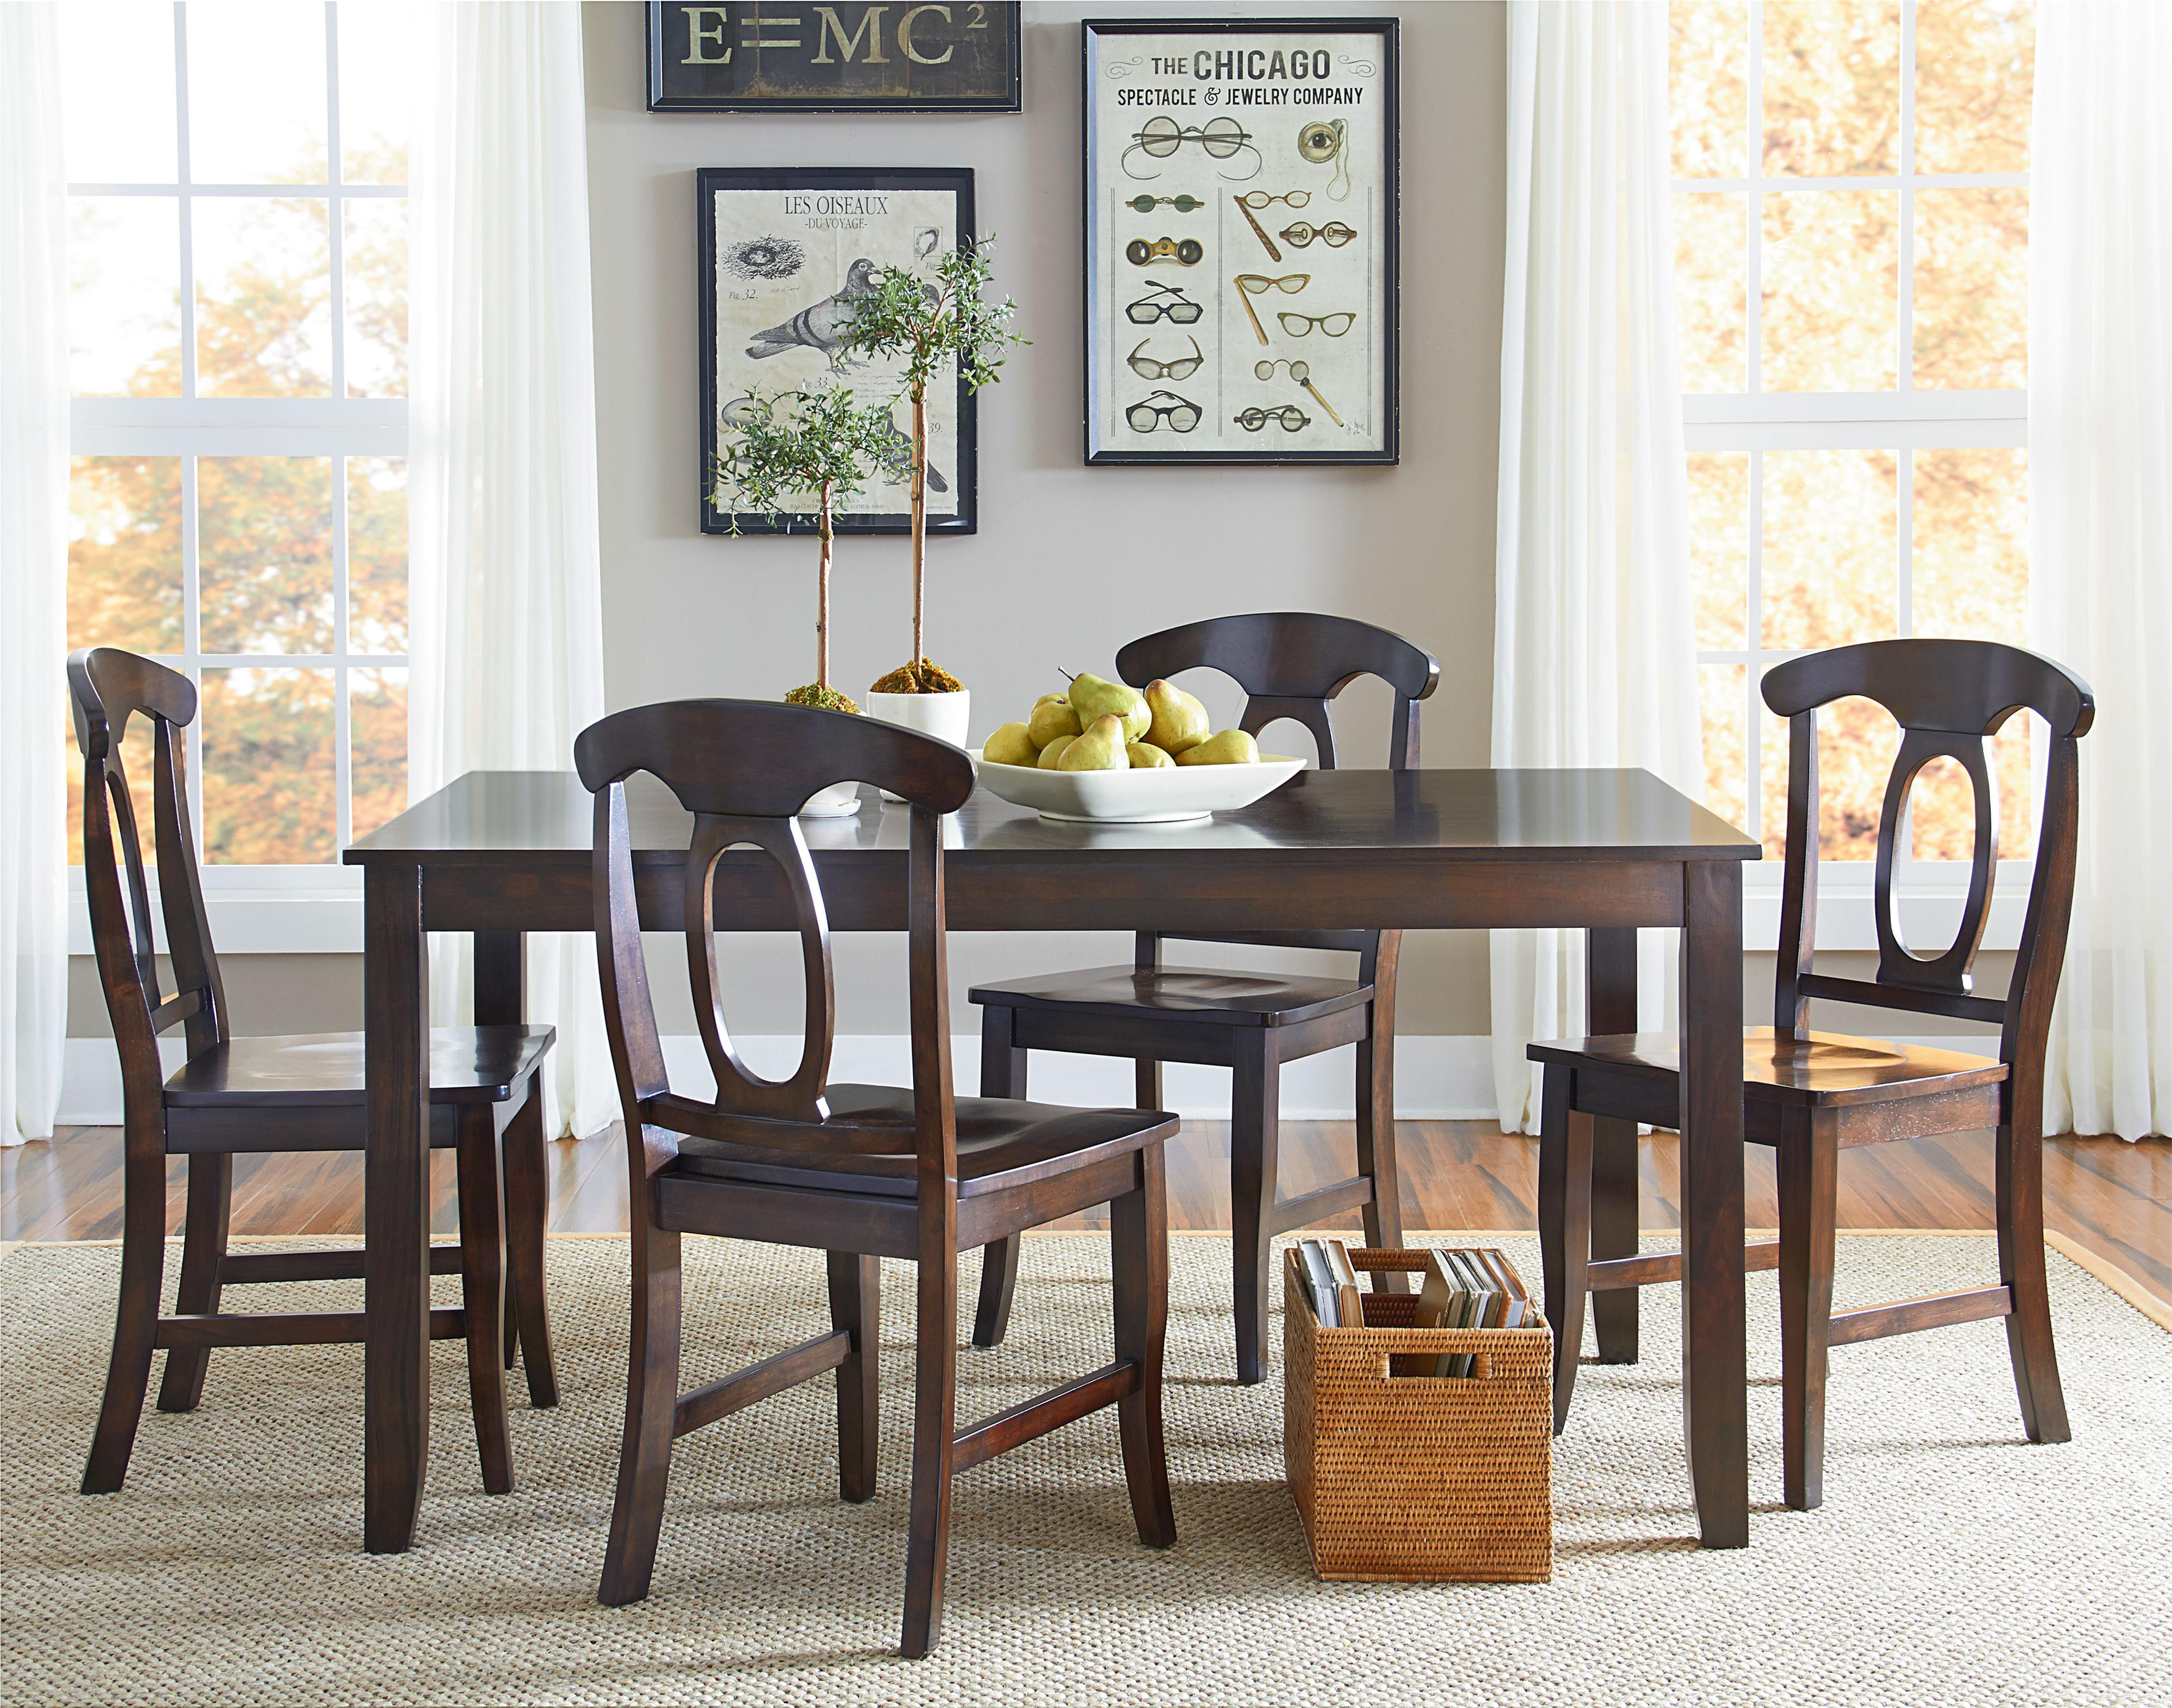 com sets furniture chairs michalchovanec dining kitchen table room throughout walmart attractive chair and